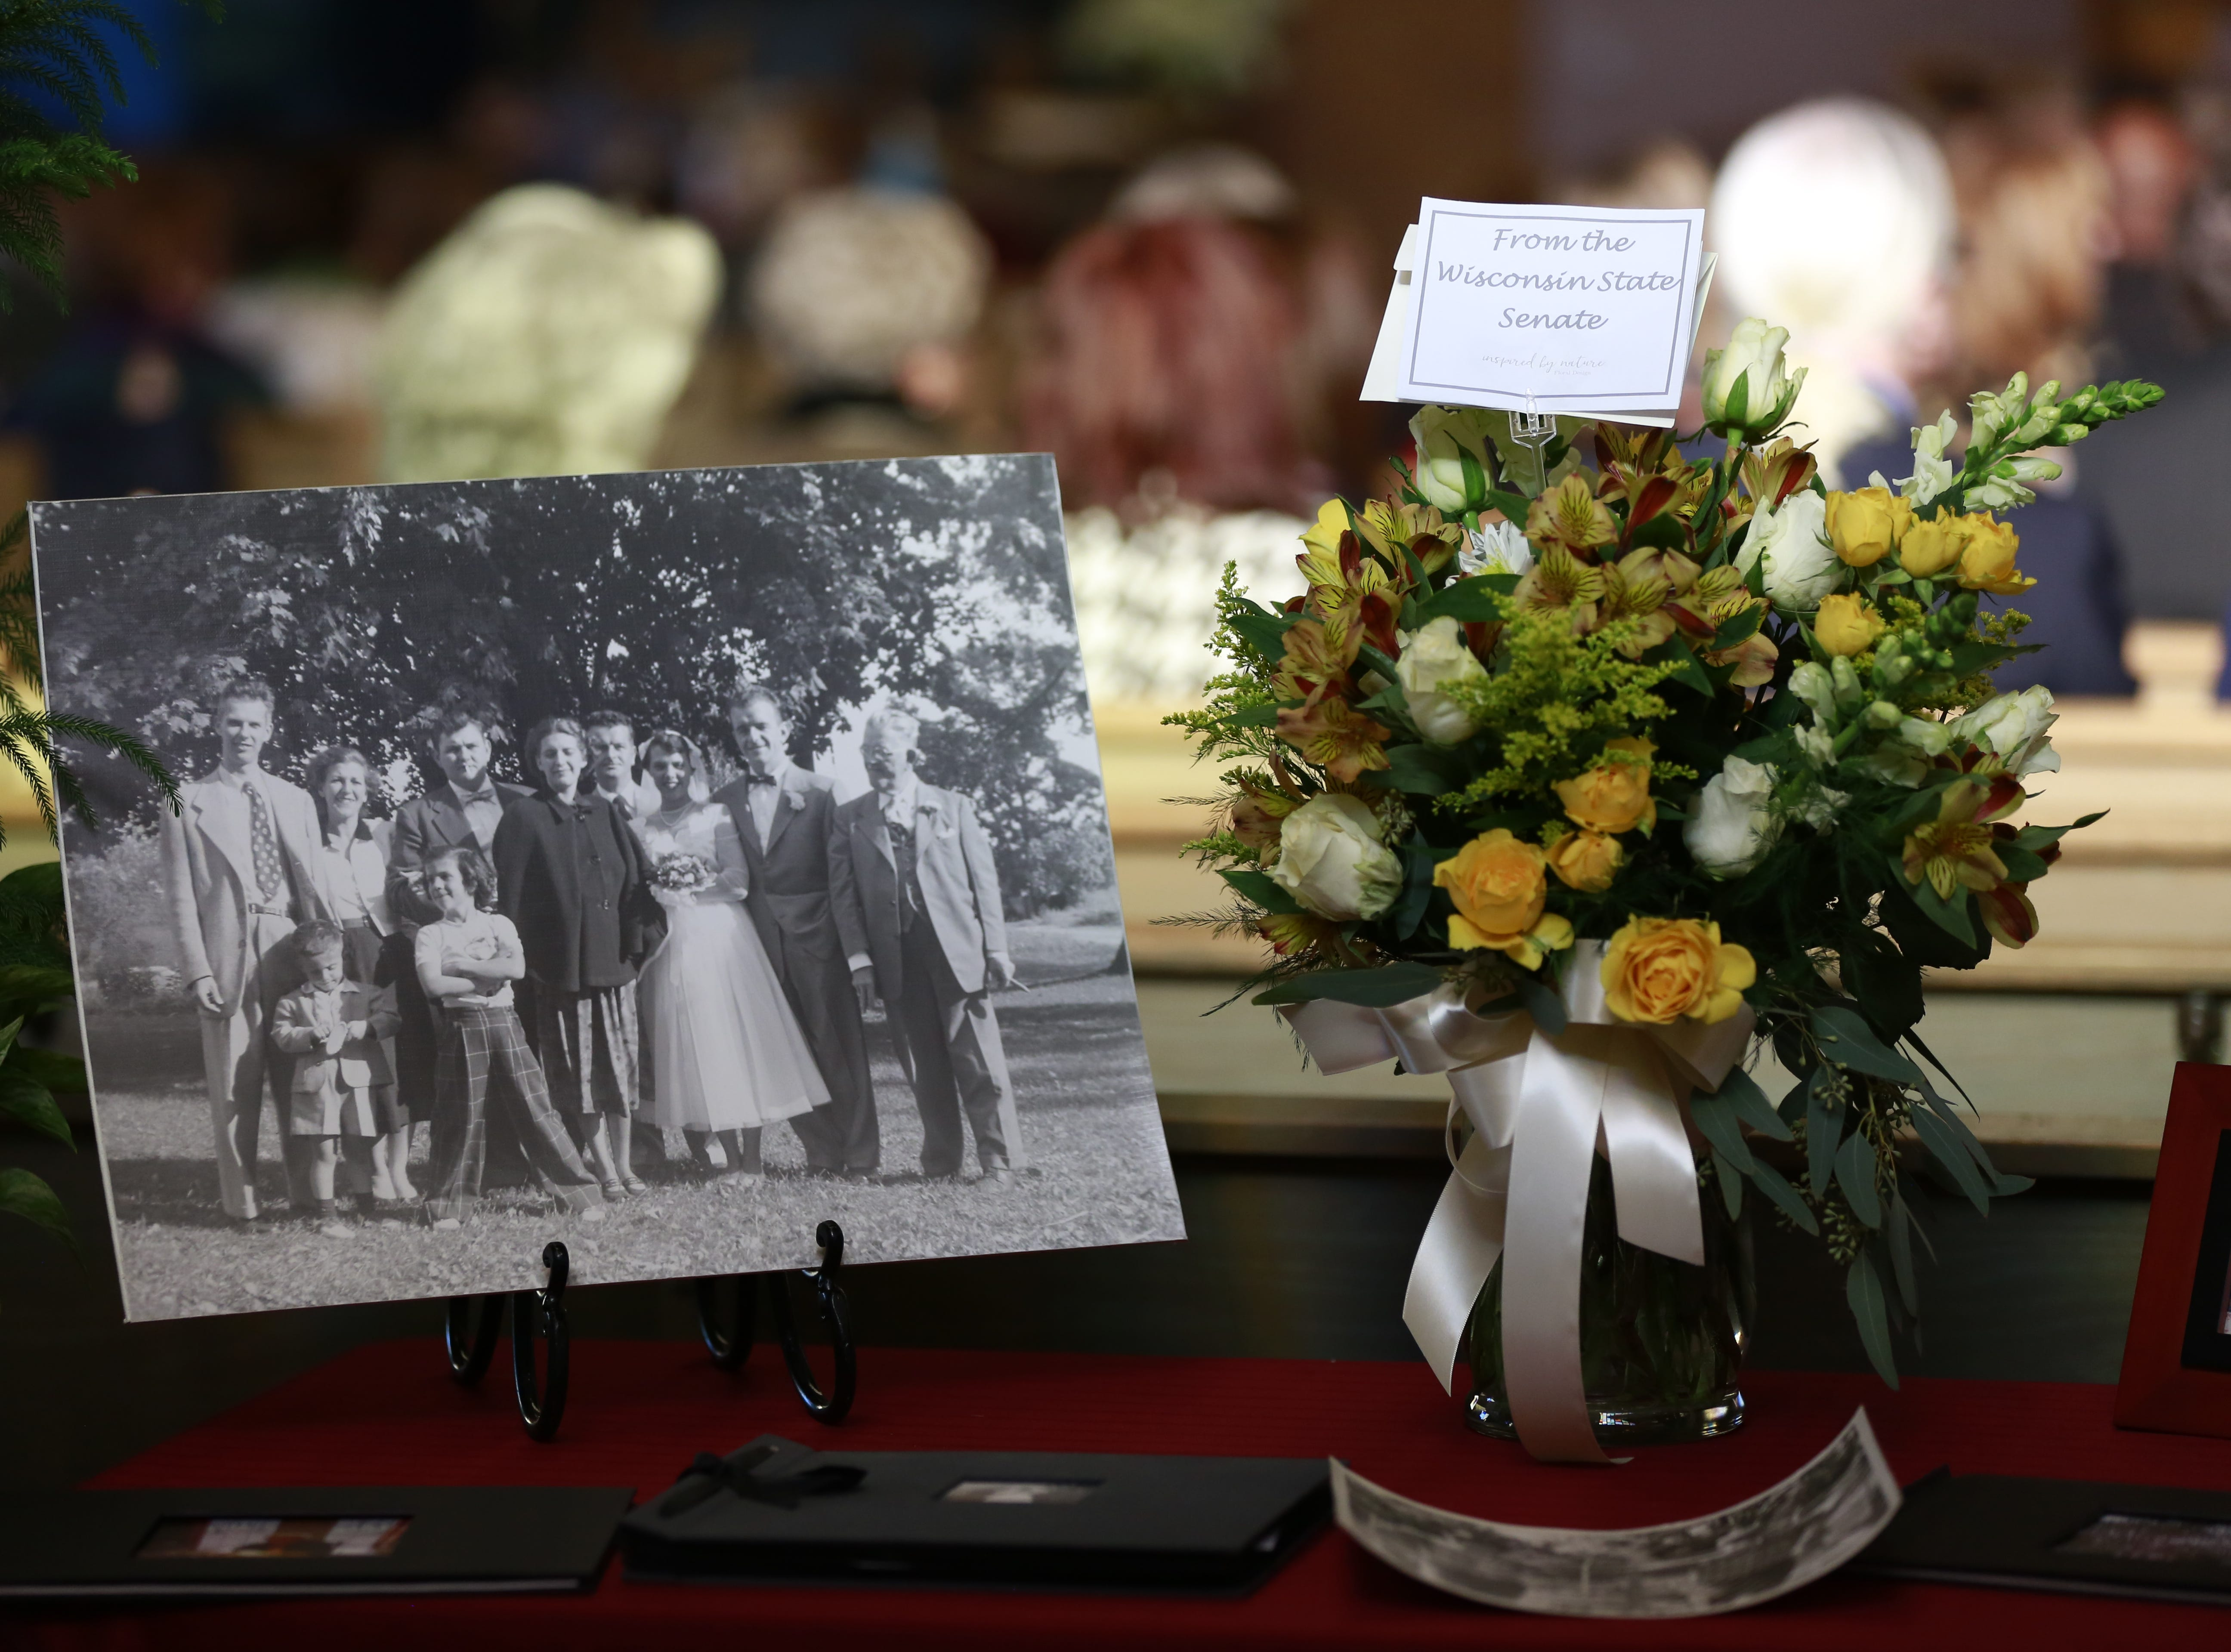 A family photo of former Sen. Walter Chilsen displays during his funeral service Friday, Jan. 04, 2019, at Holy Name of Jesus Parish in Wausau, Wisc. T'xer Zhon Kha/USA TODAY NETWORK-Wisconsin